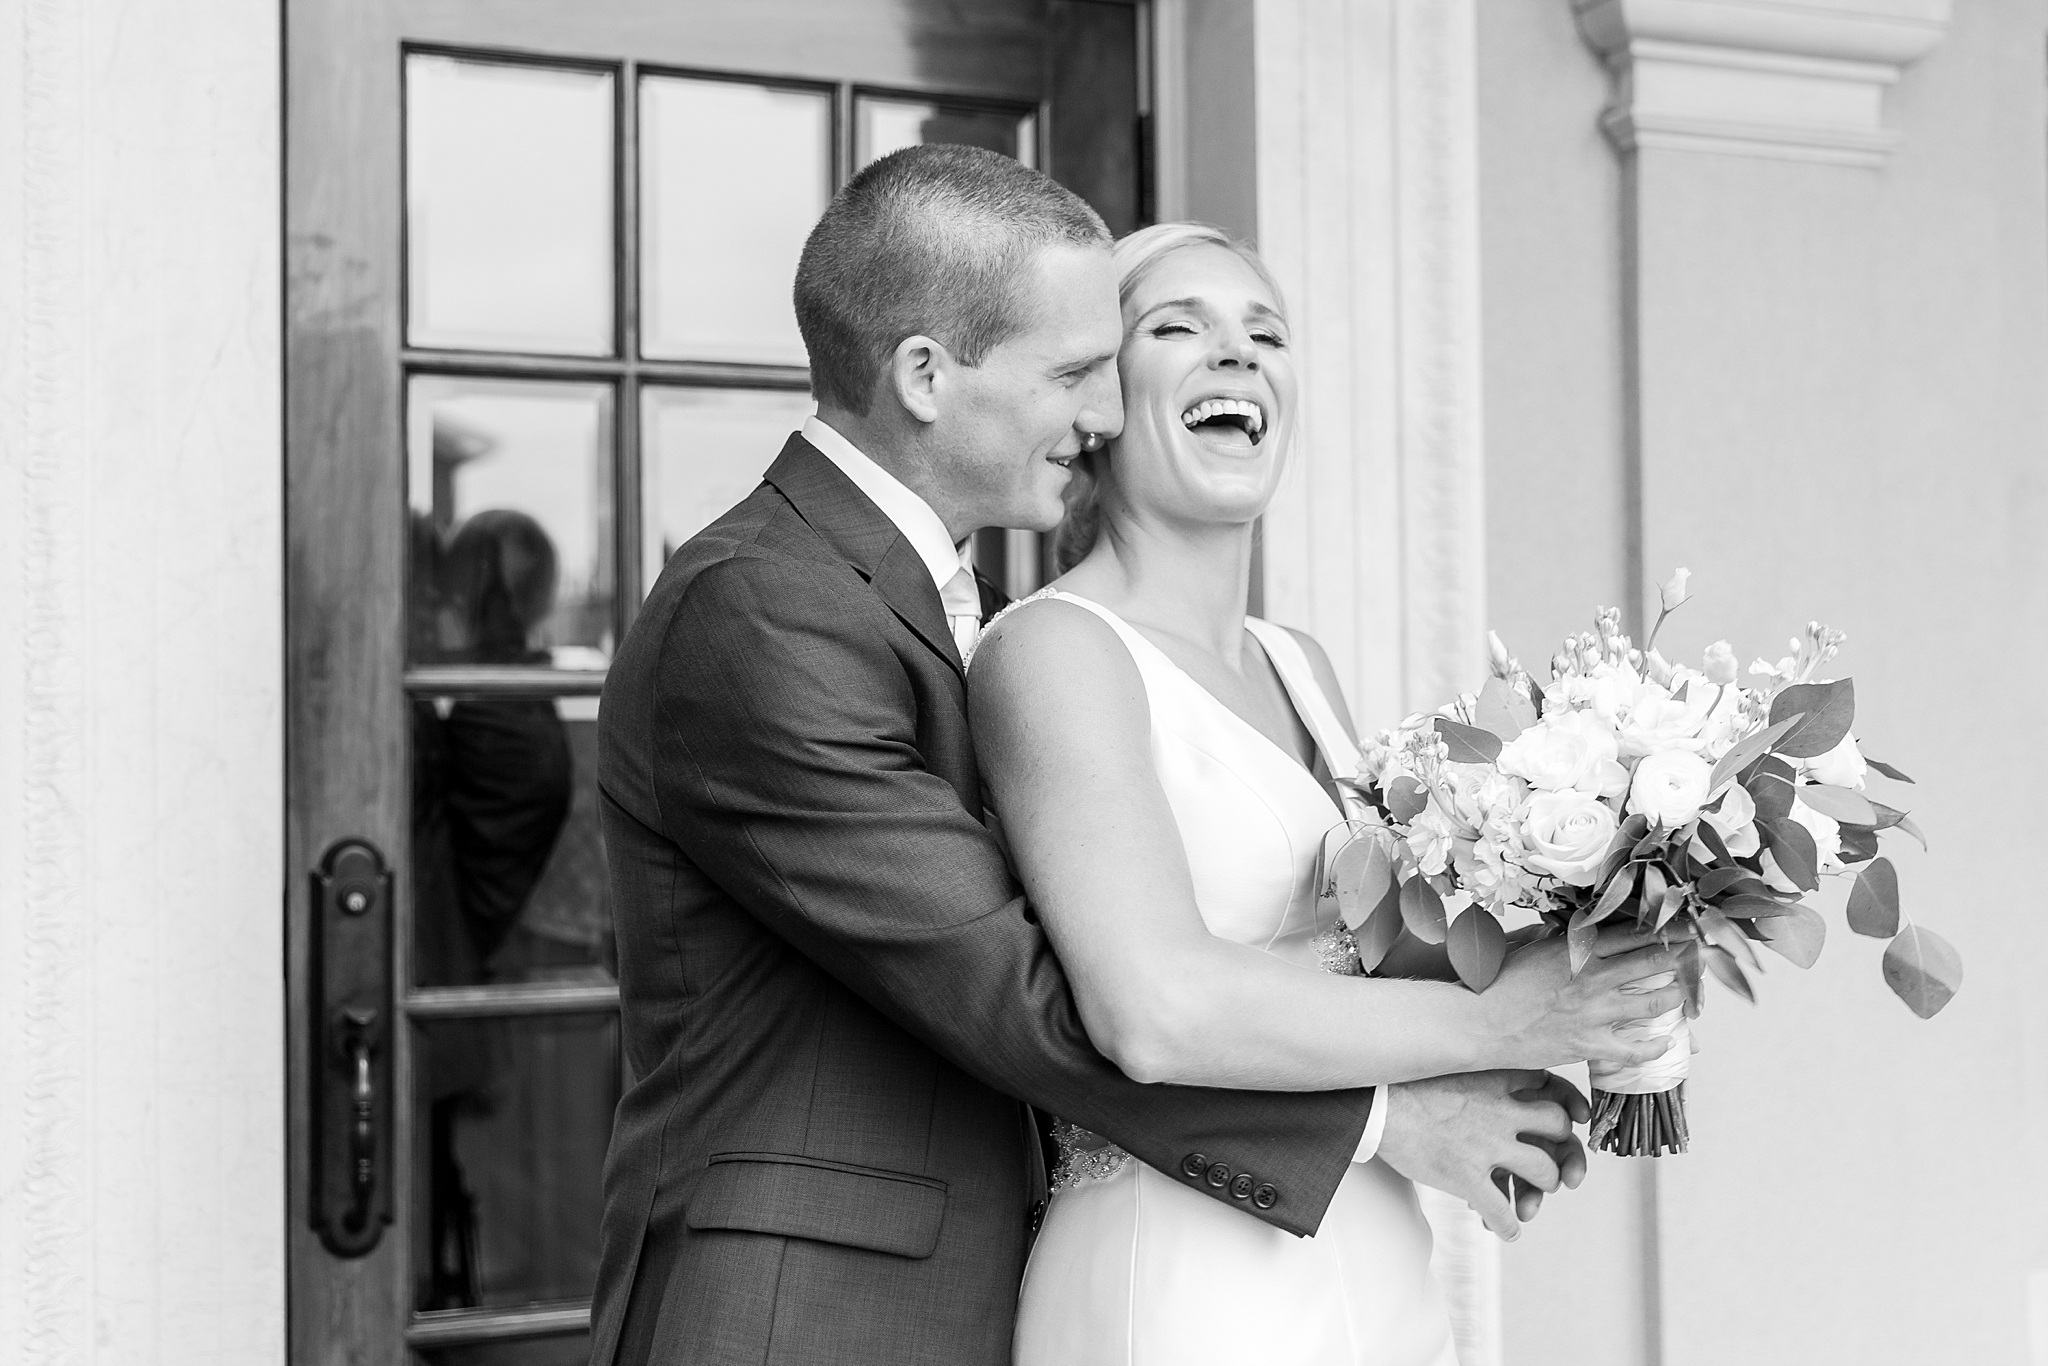 chapman-house-casually-chic-wedding-photography-in-rochester-michigan-by-courtney-carolyn-photography_0019.jpg